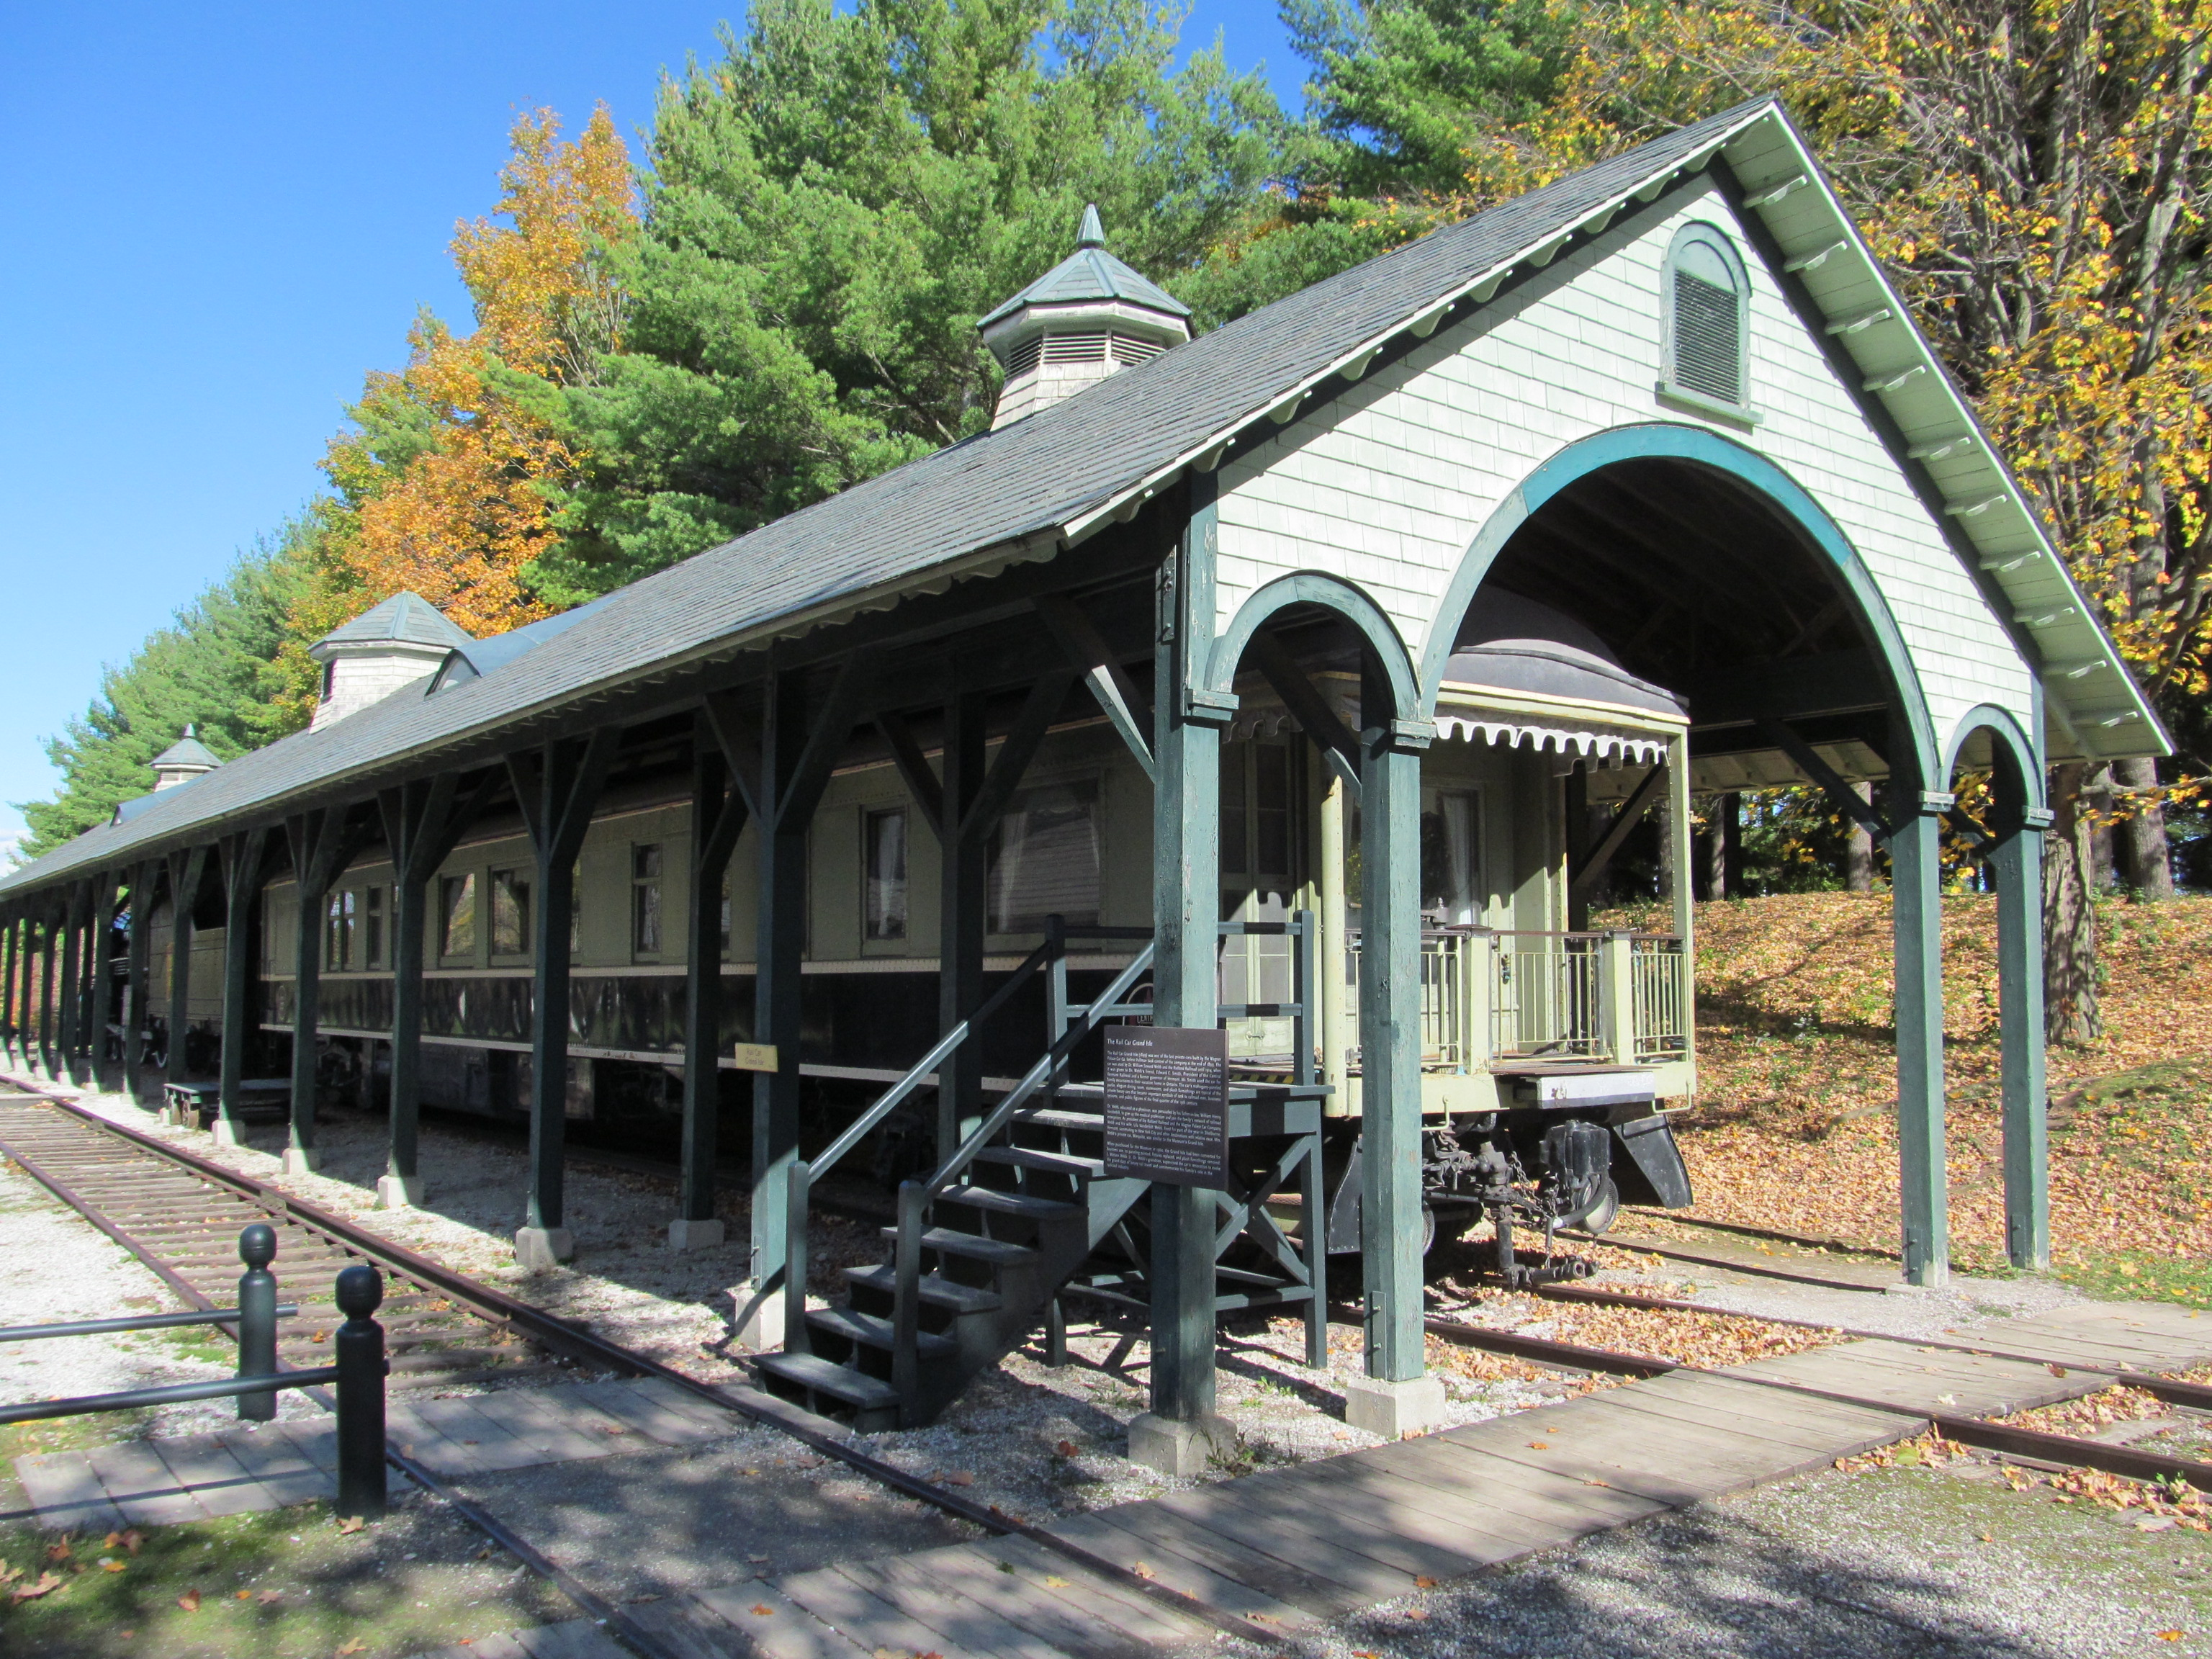 File:Rail Car Grand Isle, Shelburne Museum, Shelburne VT ...